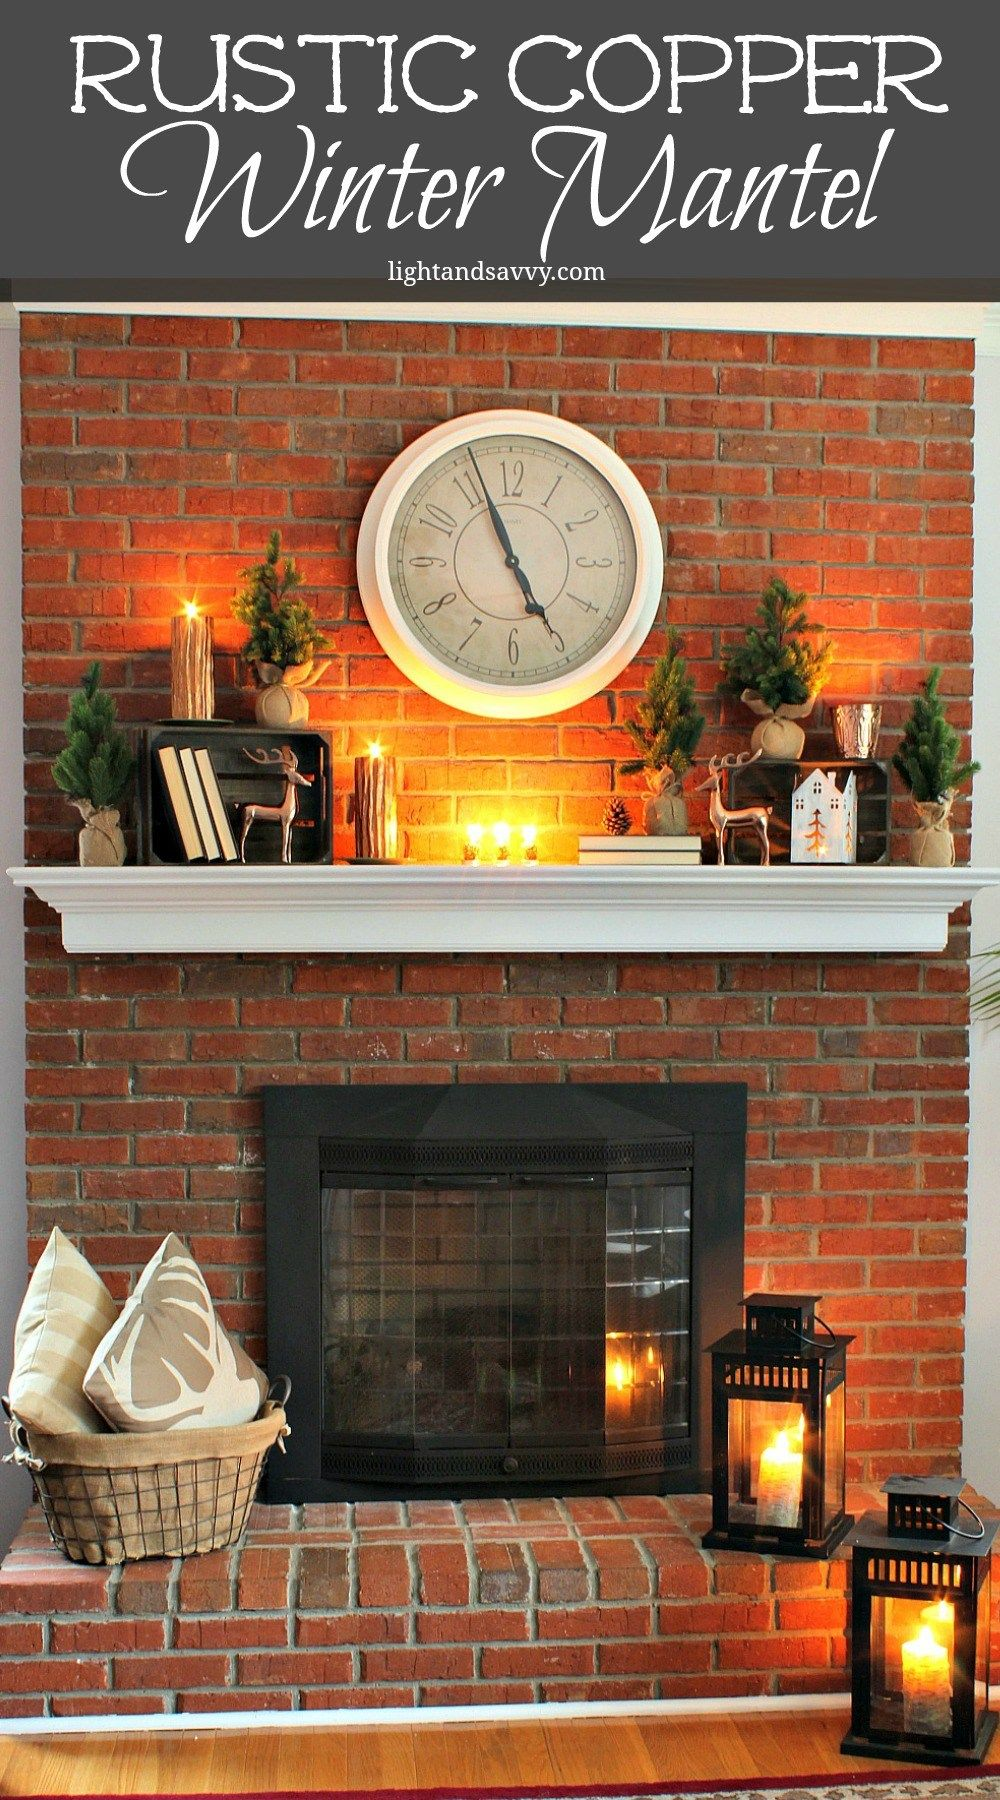 Rustic Copper Winter Mantel both Night and Day!